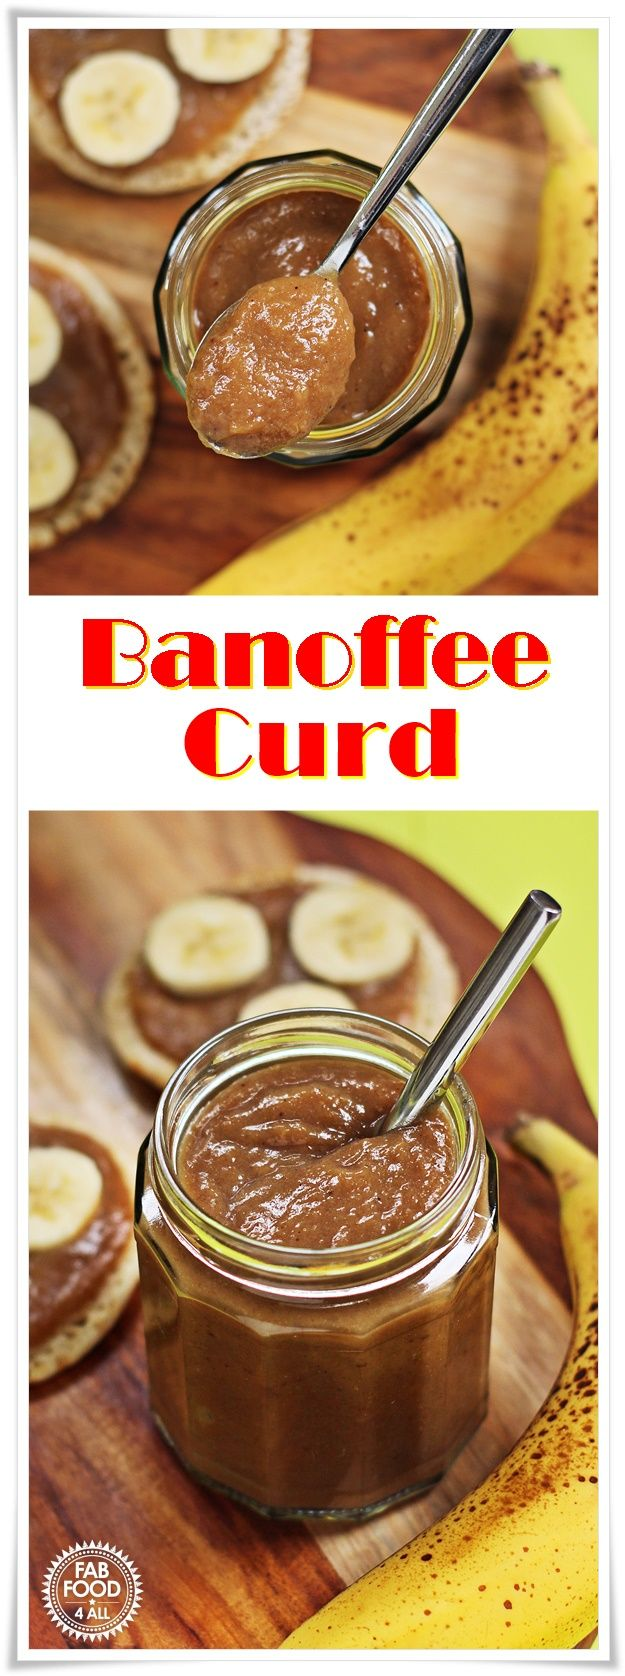 Quick Banoffee Curd (Banana & Toffee Curd) all the taste of Banoffee Pie in a jar!- Fab Food 4 All #banana #banoffee #curd #preserve